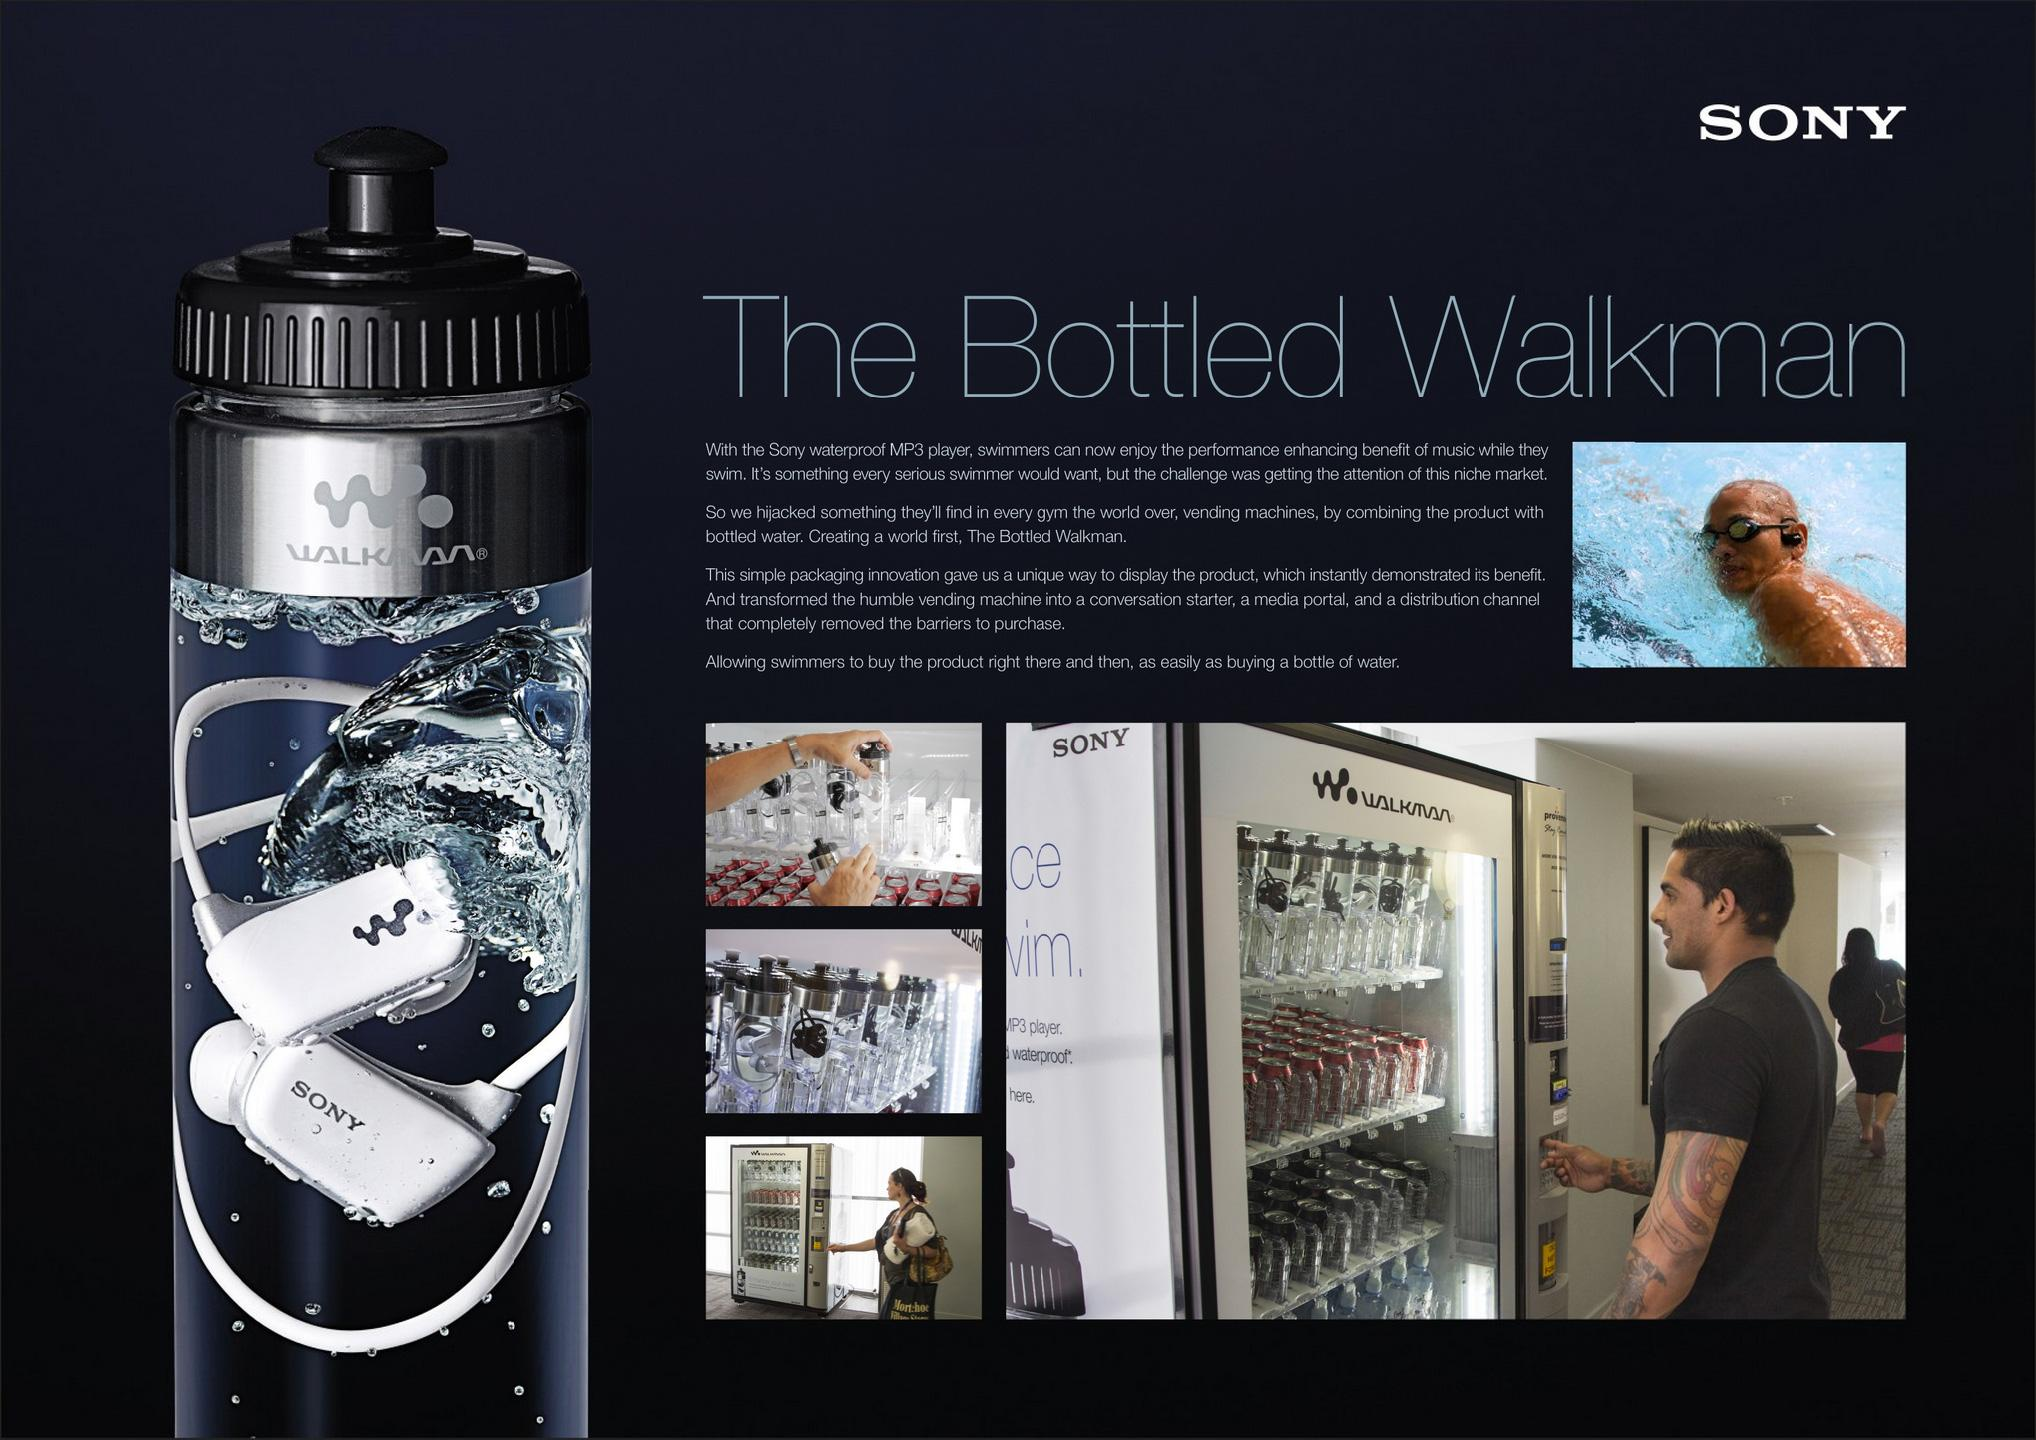 Sony Direct Ad -  The bottled walkman